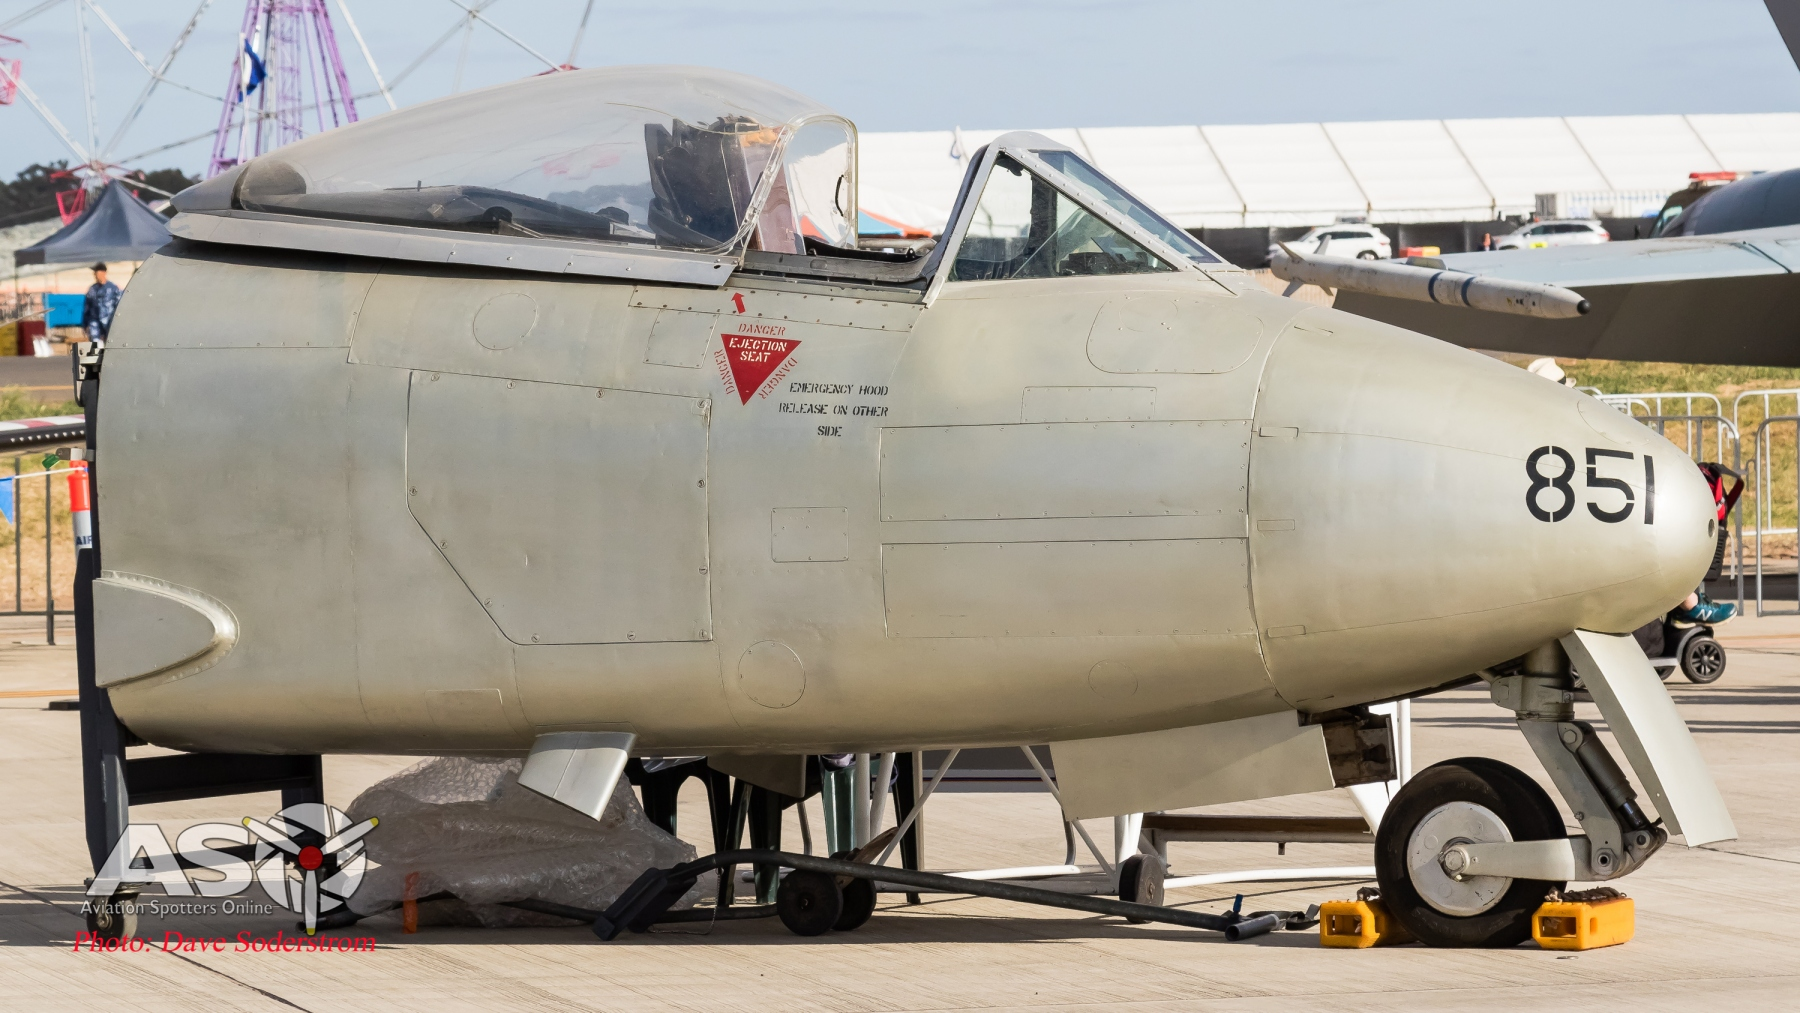 1_ASO-EDN-Airshow-2019-110-1-of-1